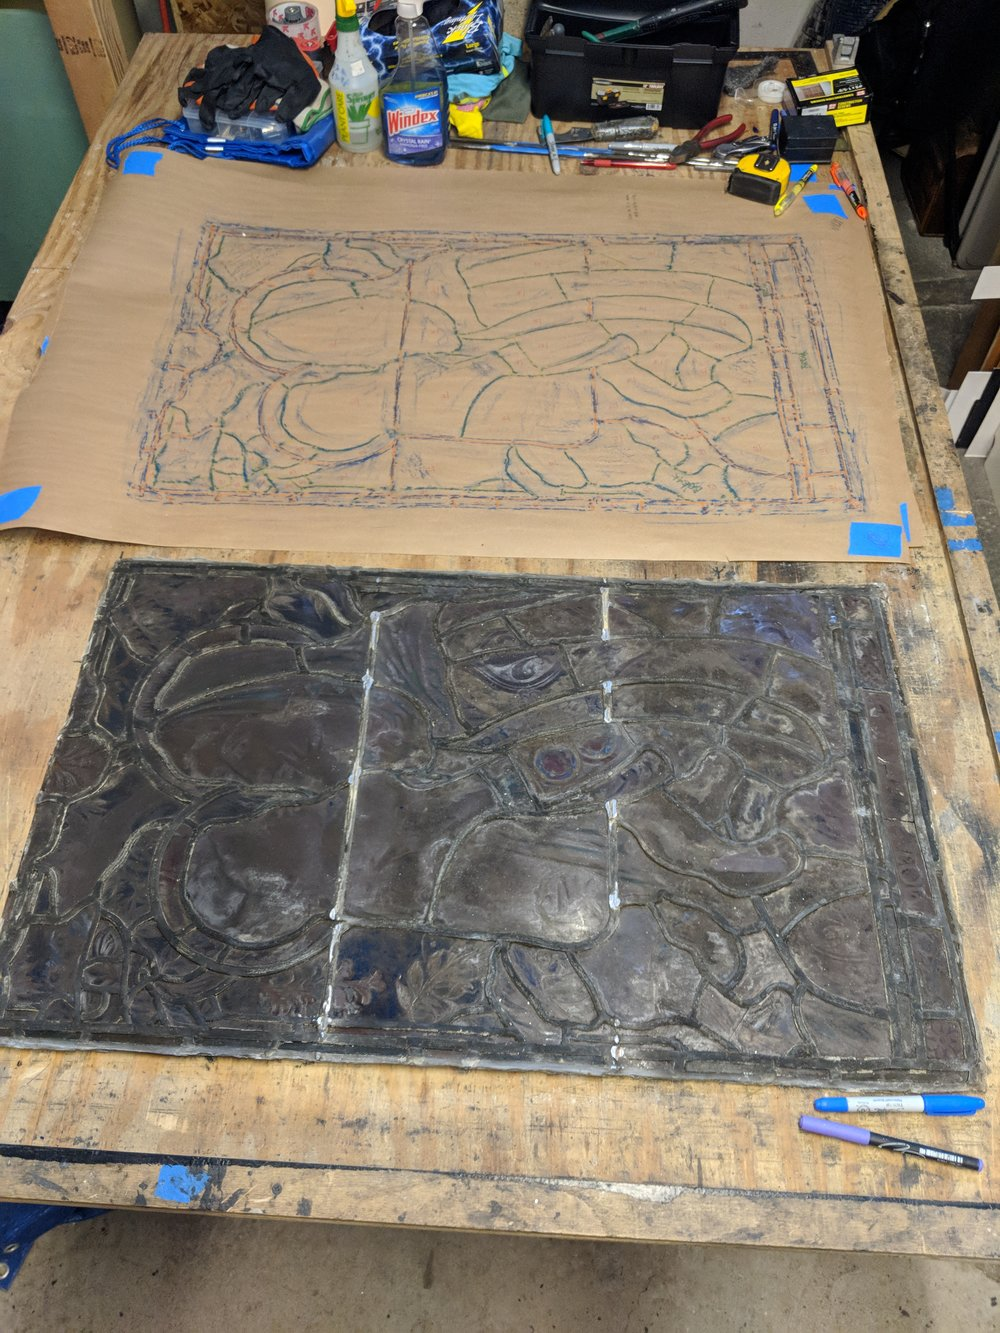 We lay out the panel on the workbench and make a rubbing of the leadwork, so that we can put it back together quickly and precisely. Broken pieces are counted and lead size is noted.